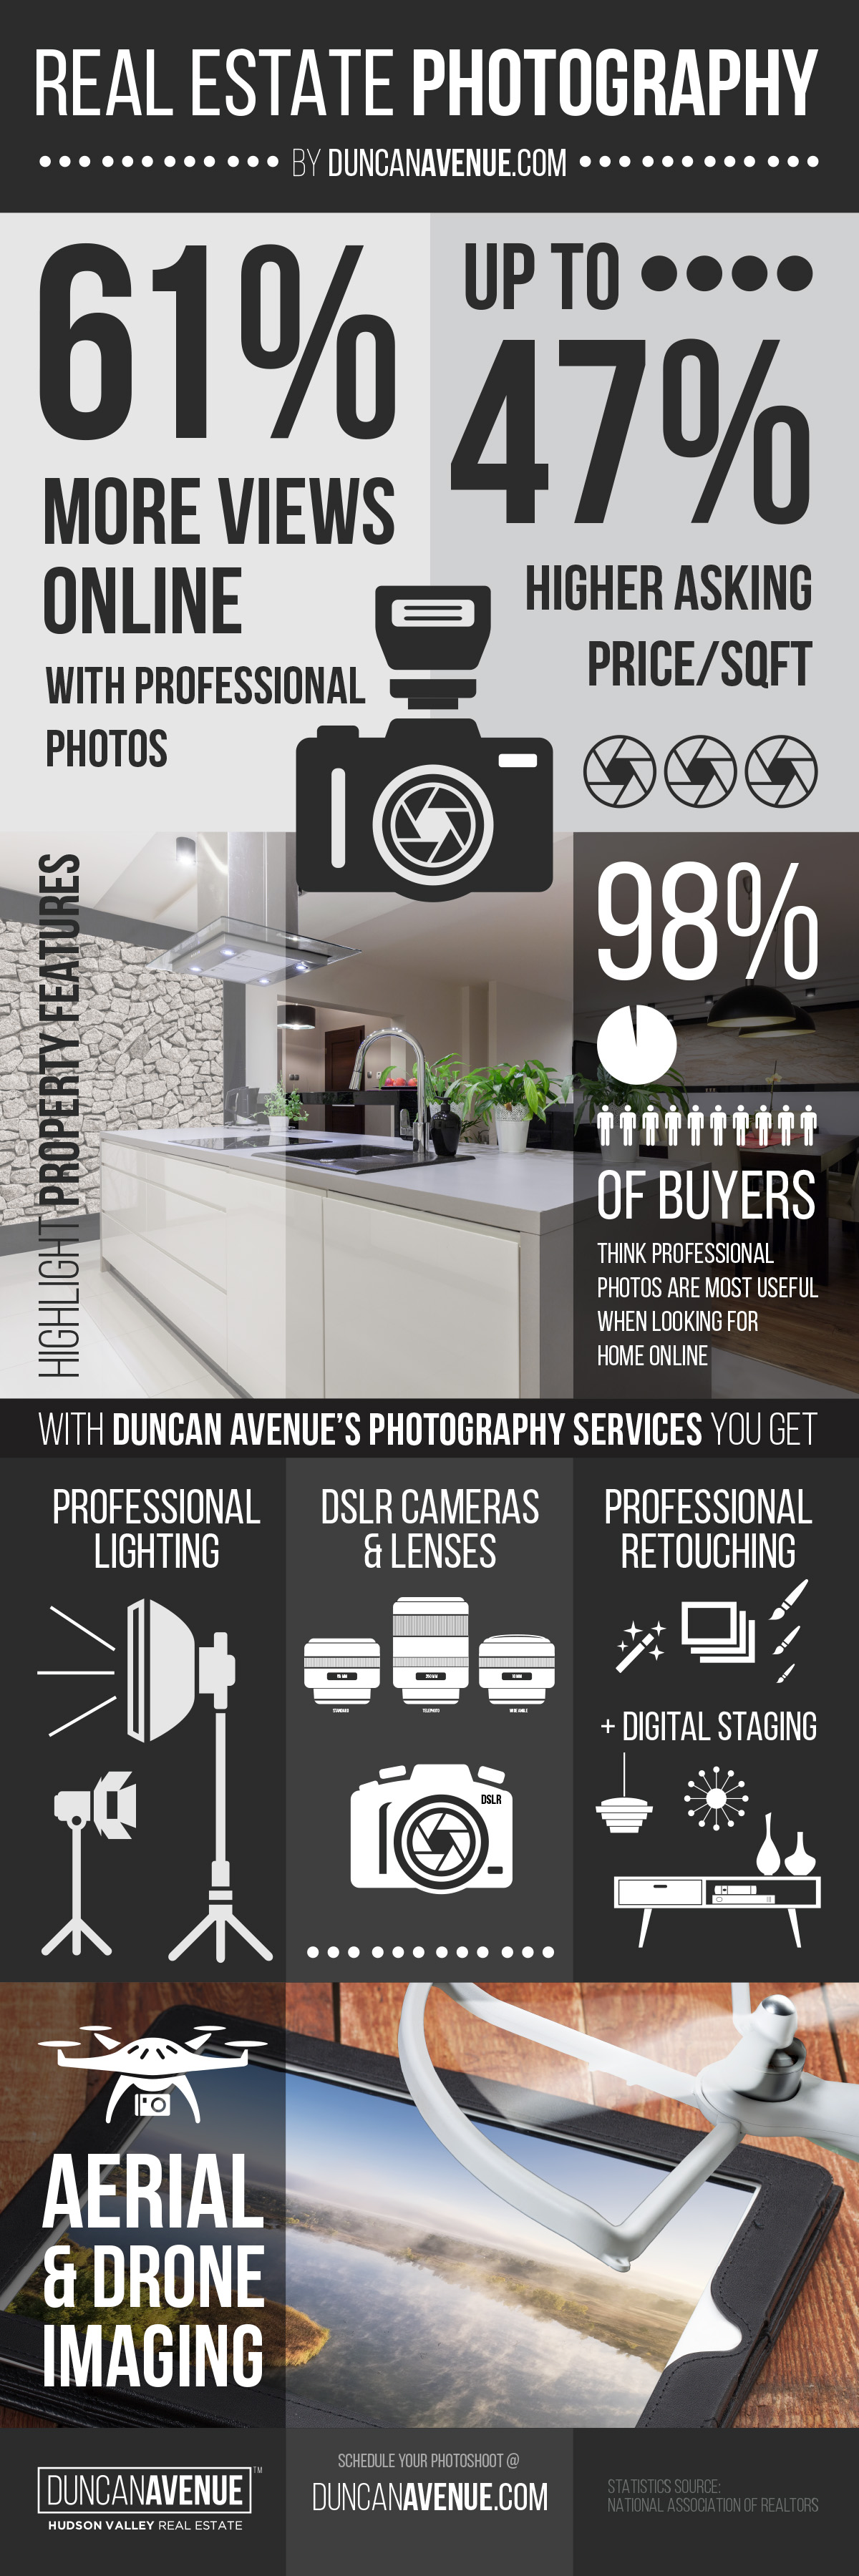 Photography-Infographic-Duncan-Avenue-Hu